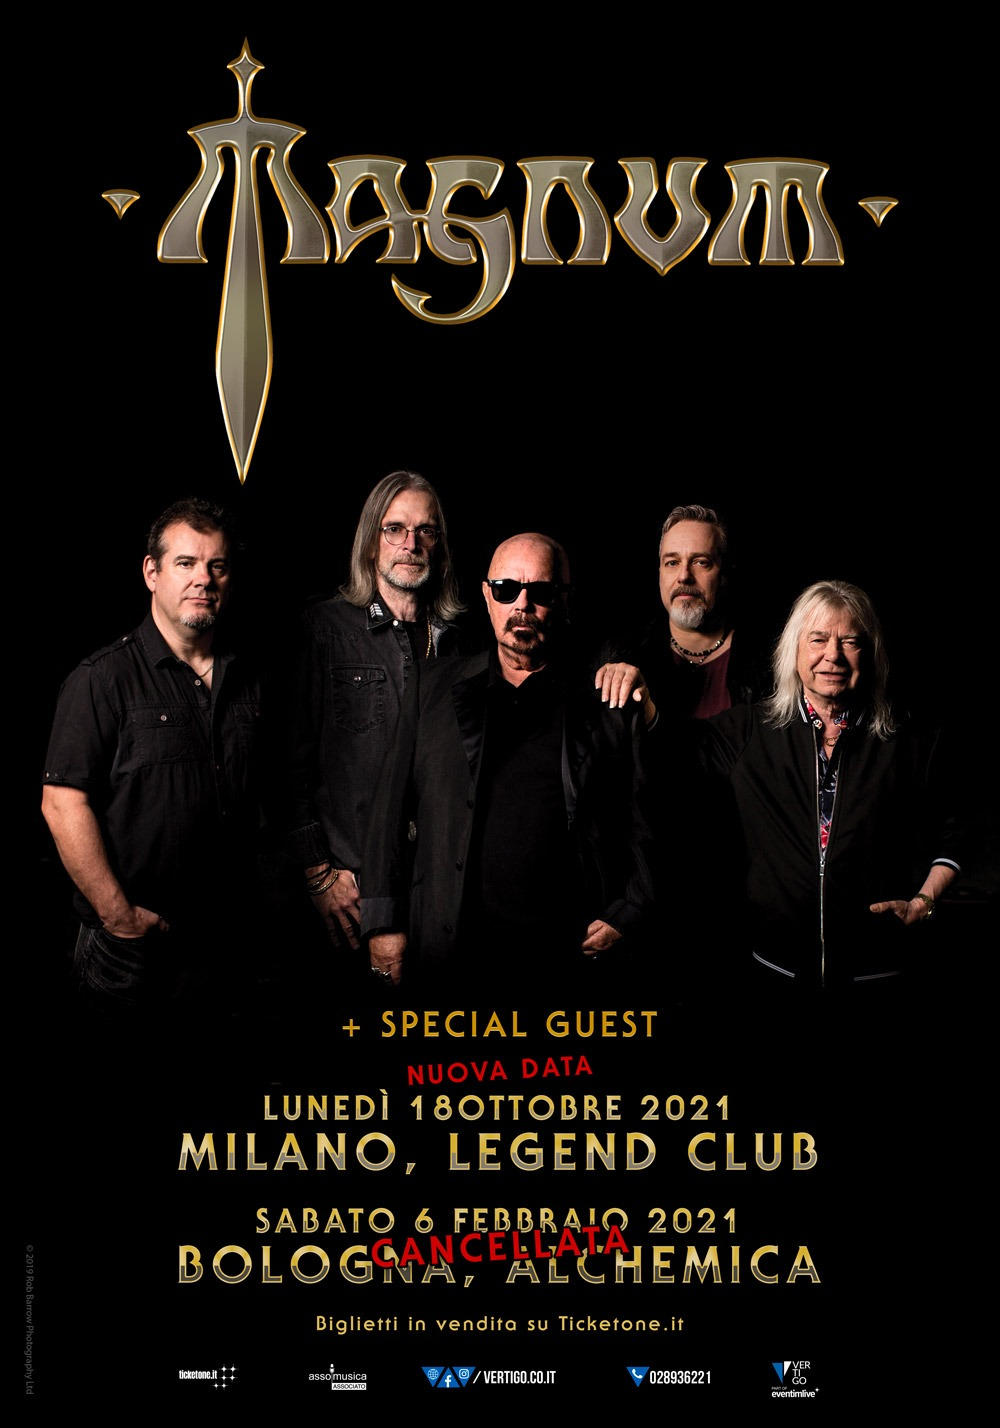 MAGNUM: rinviata la data al Legend Club, cancellata quella di Bologna